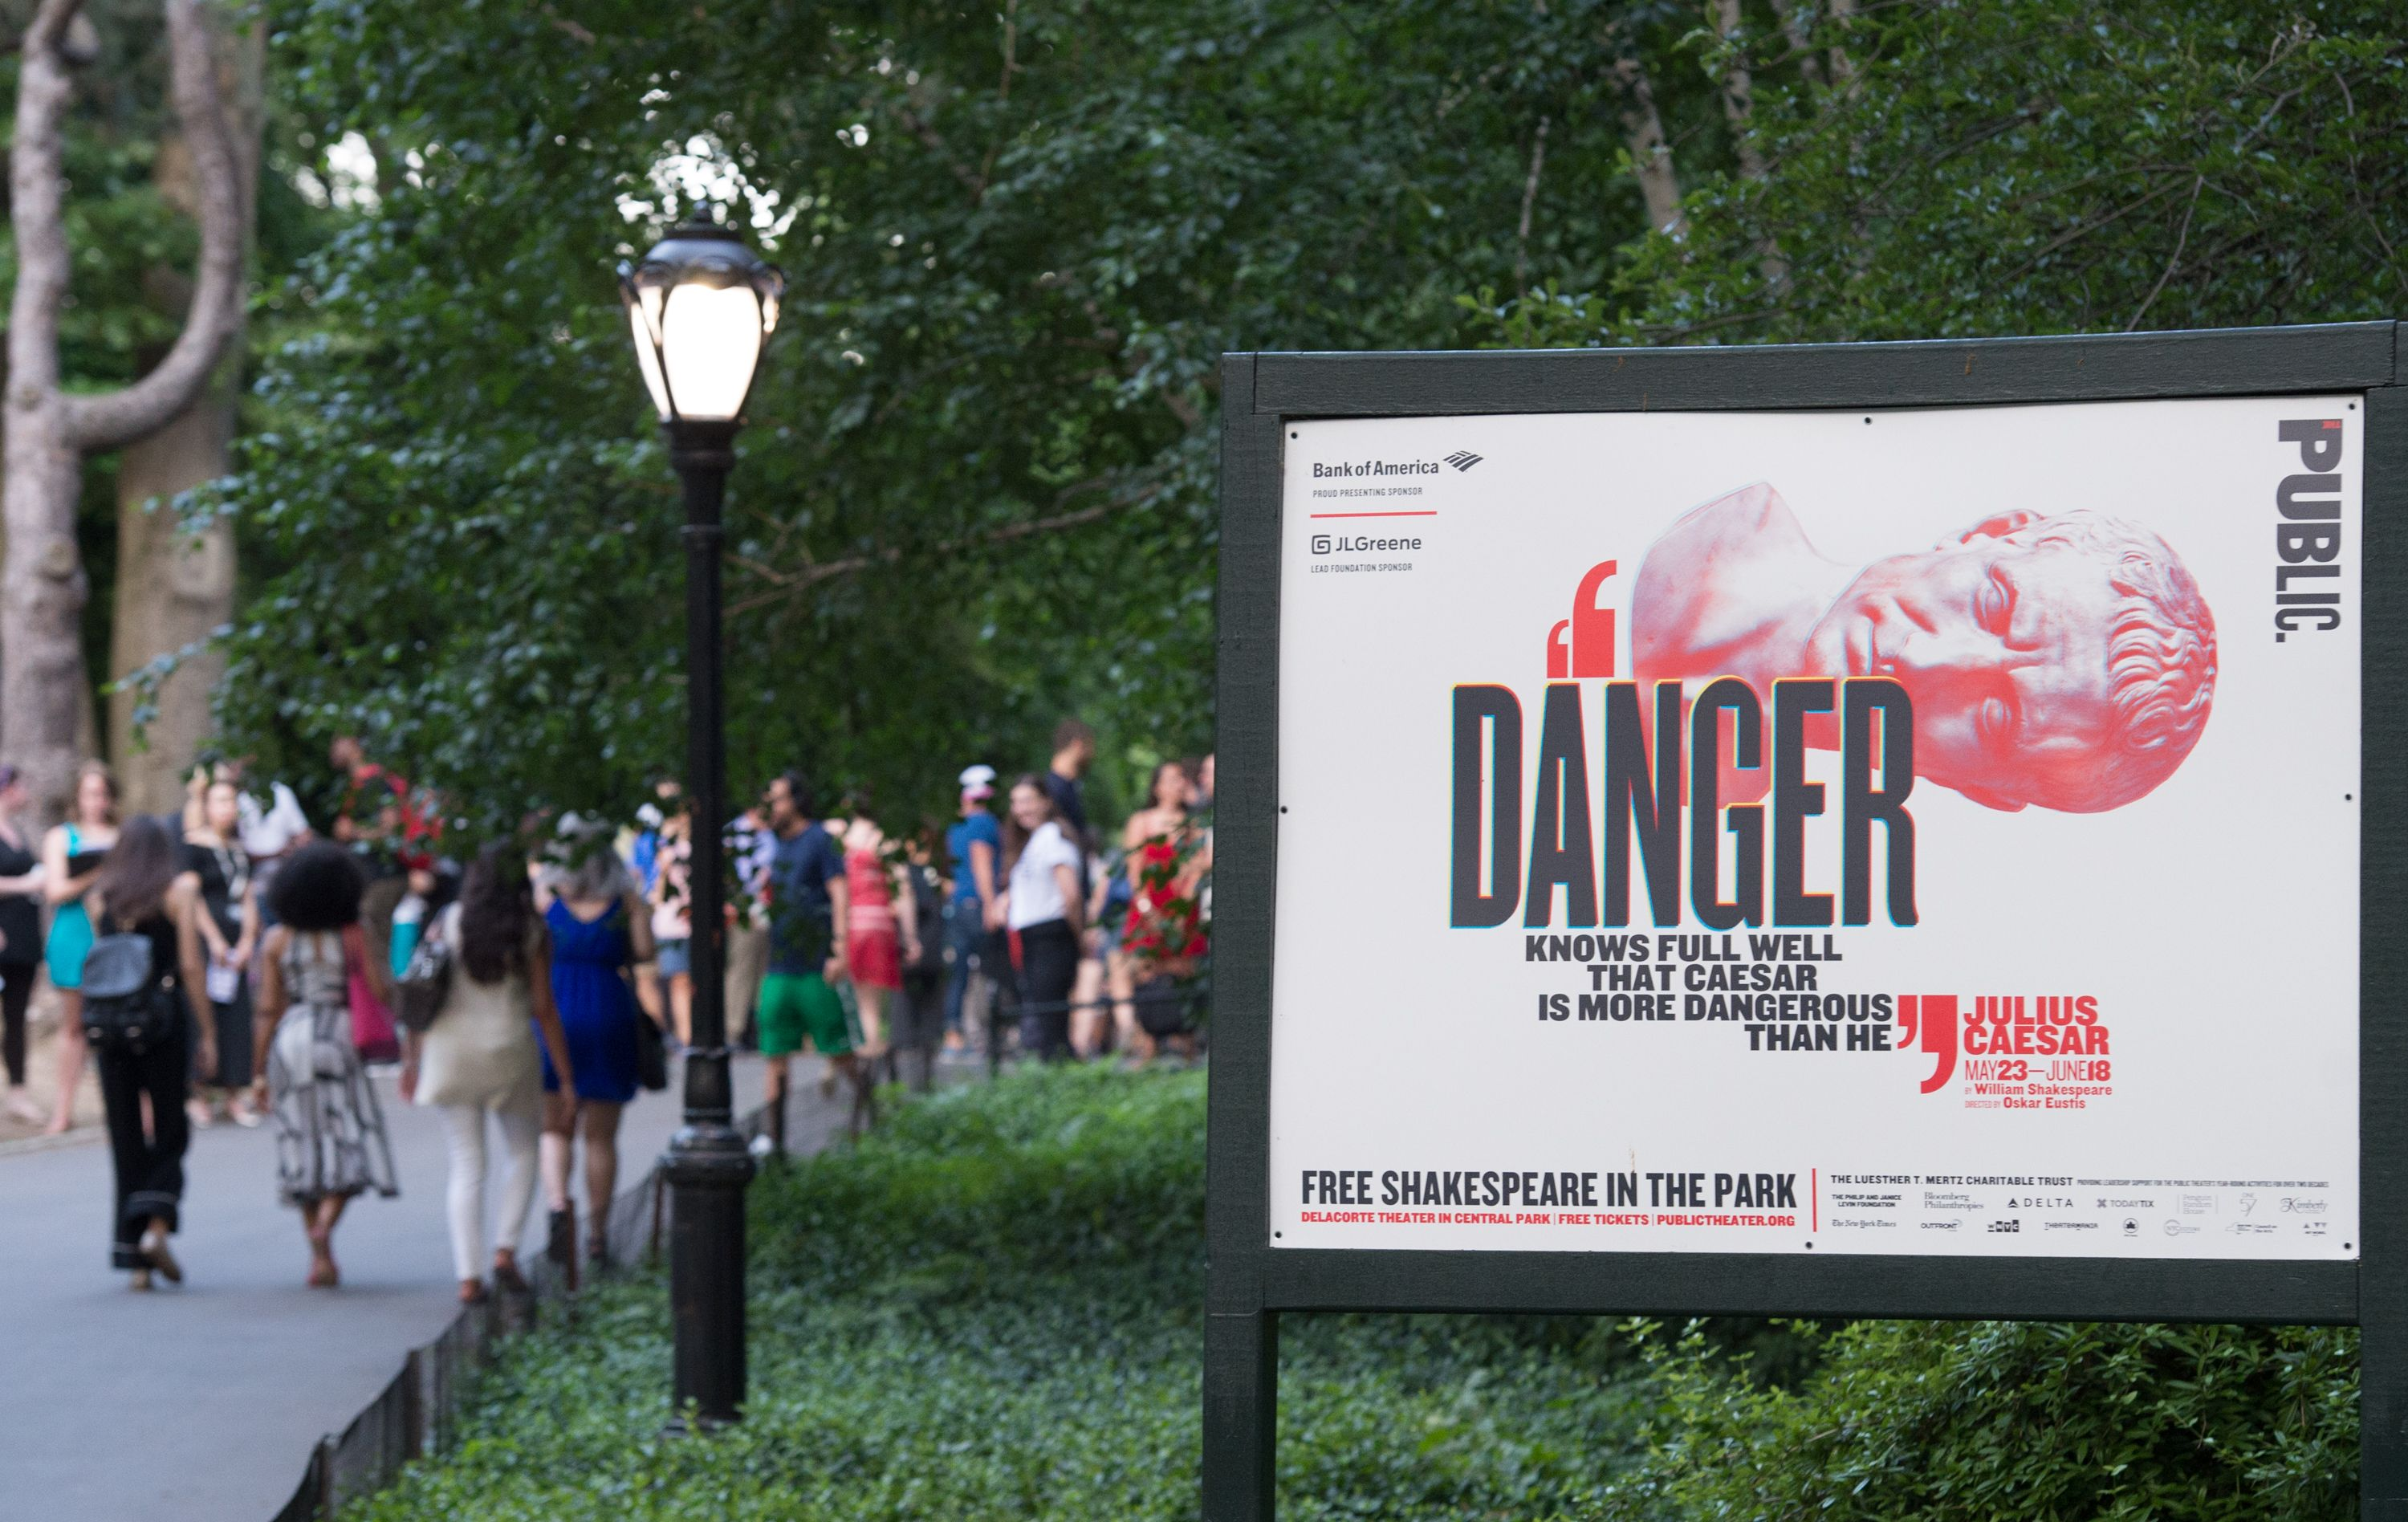 People arrive for the opening night of Shakespeare in the Park's production of Julius Caesar at Central Park's Delacorte Theater on June 12, 2017 in New York.                     A New York production of Shakespeare's  Julius Caesar  drawing parallels between the assassinated Roman ruler and Donald Trump was in the eye of a growing storm, abandoned by corporate sponsors and sparking debate about freedom of expression. The play, which first opened in Central Park on May 23 and runs to June 18, has attracted right-wing outrage for similarities between the way Caesar is depicted and the Republican commander-in-chief, who is hugely unpopular in New York.                      / AFP PHOTO / Bryan R. Smith        (Photo credit should read BRYAN R. SMITH/AFP/Getty Images)